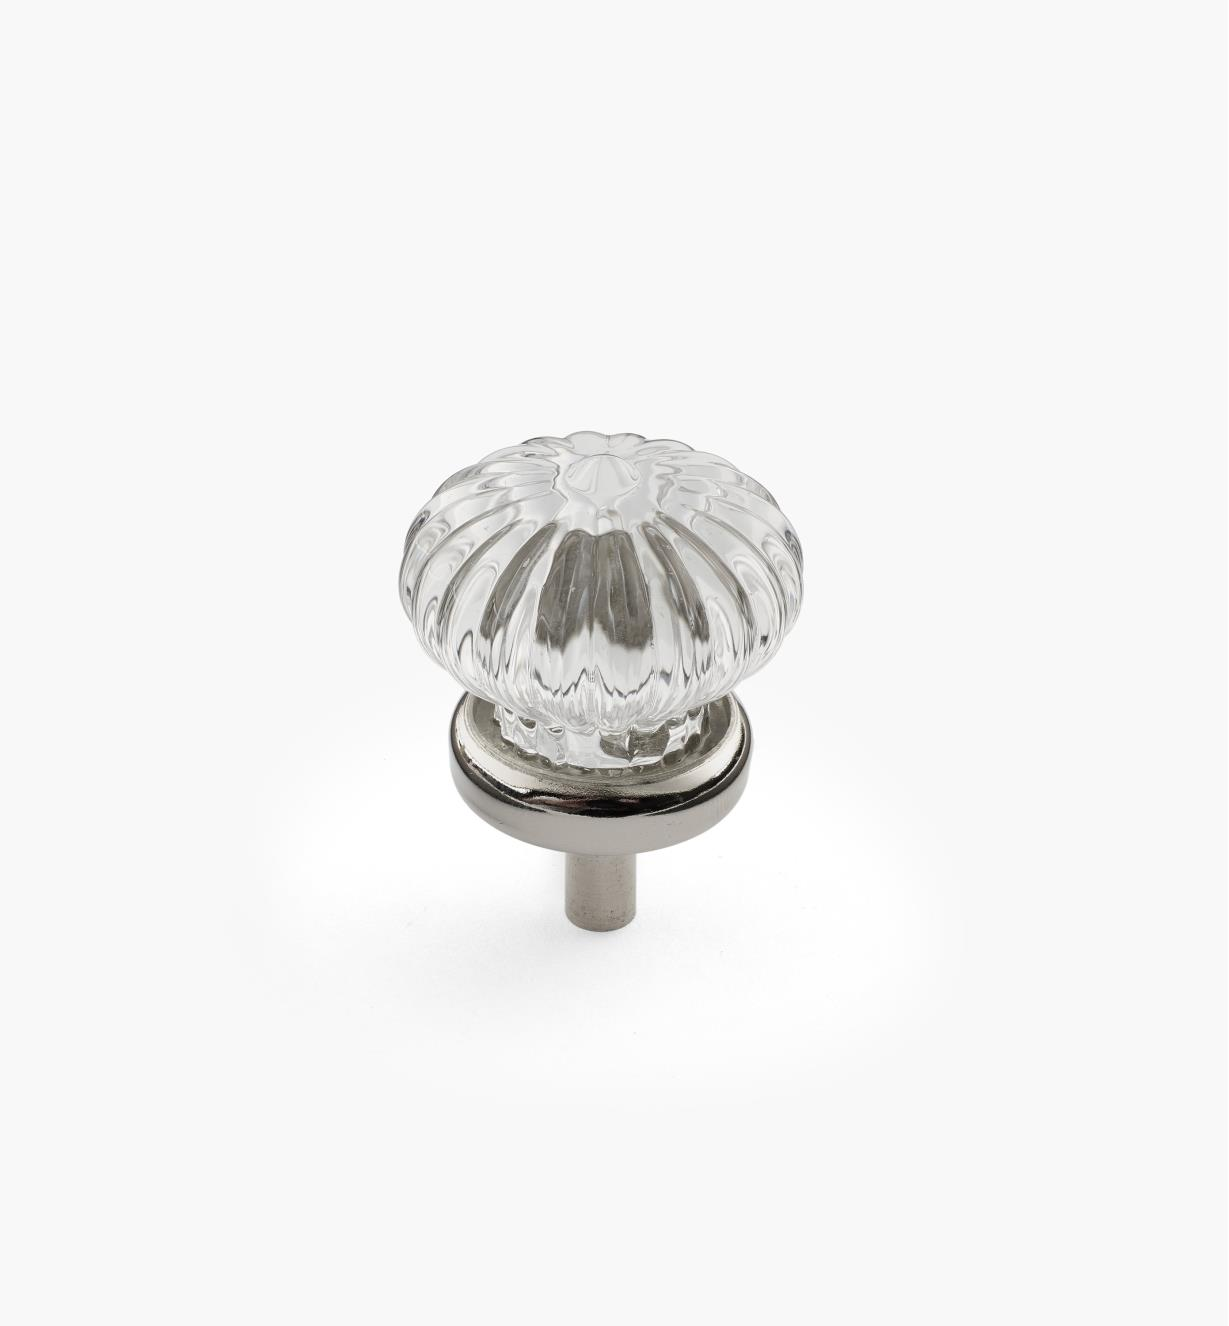 01A3810 - 28mm Glass Rosette Knob, Nickel Plate base